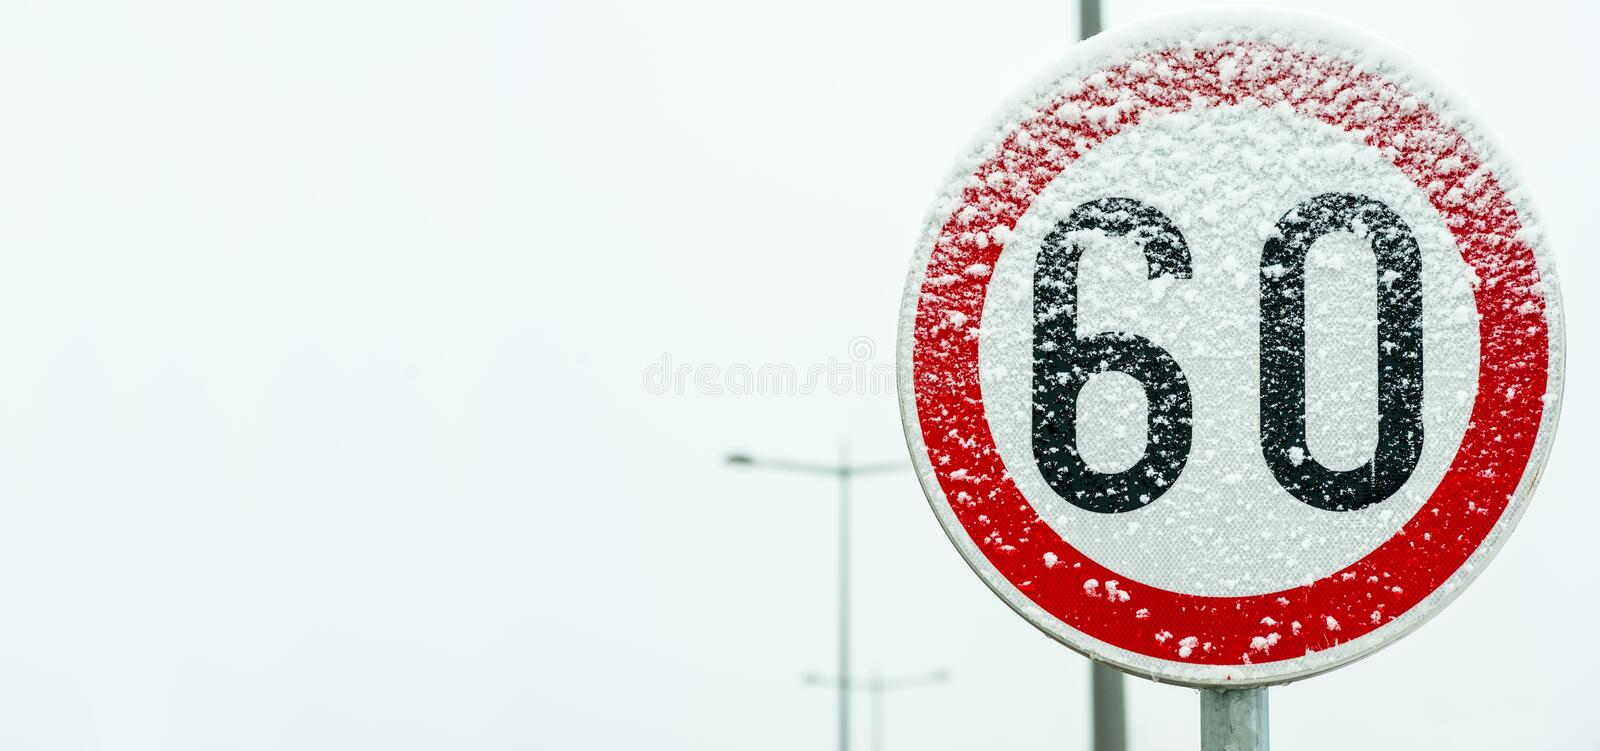 Traffic road speed limit 60 sign on the street covered with snow in danger slippery winter season close up with free copy space stock photography